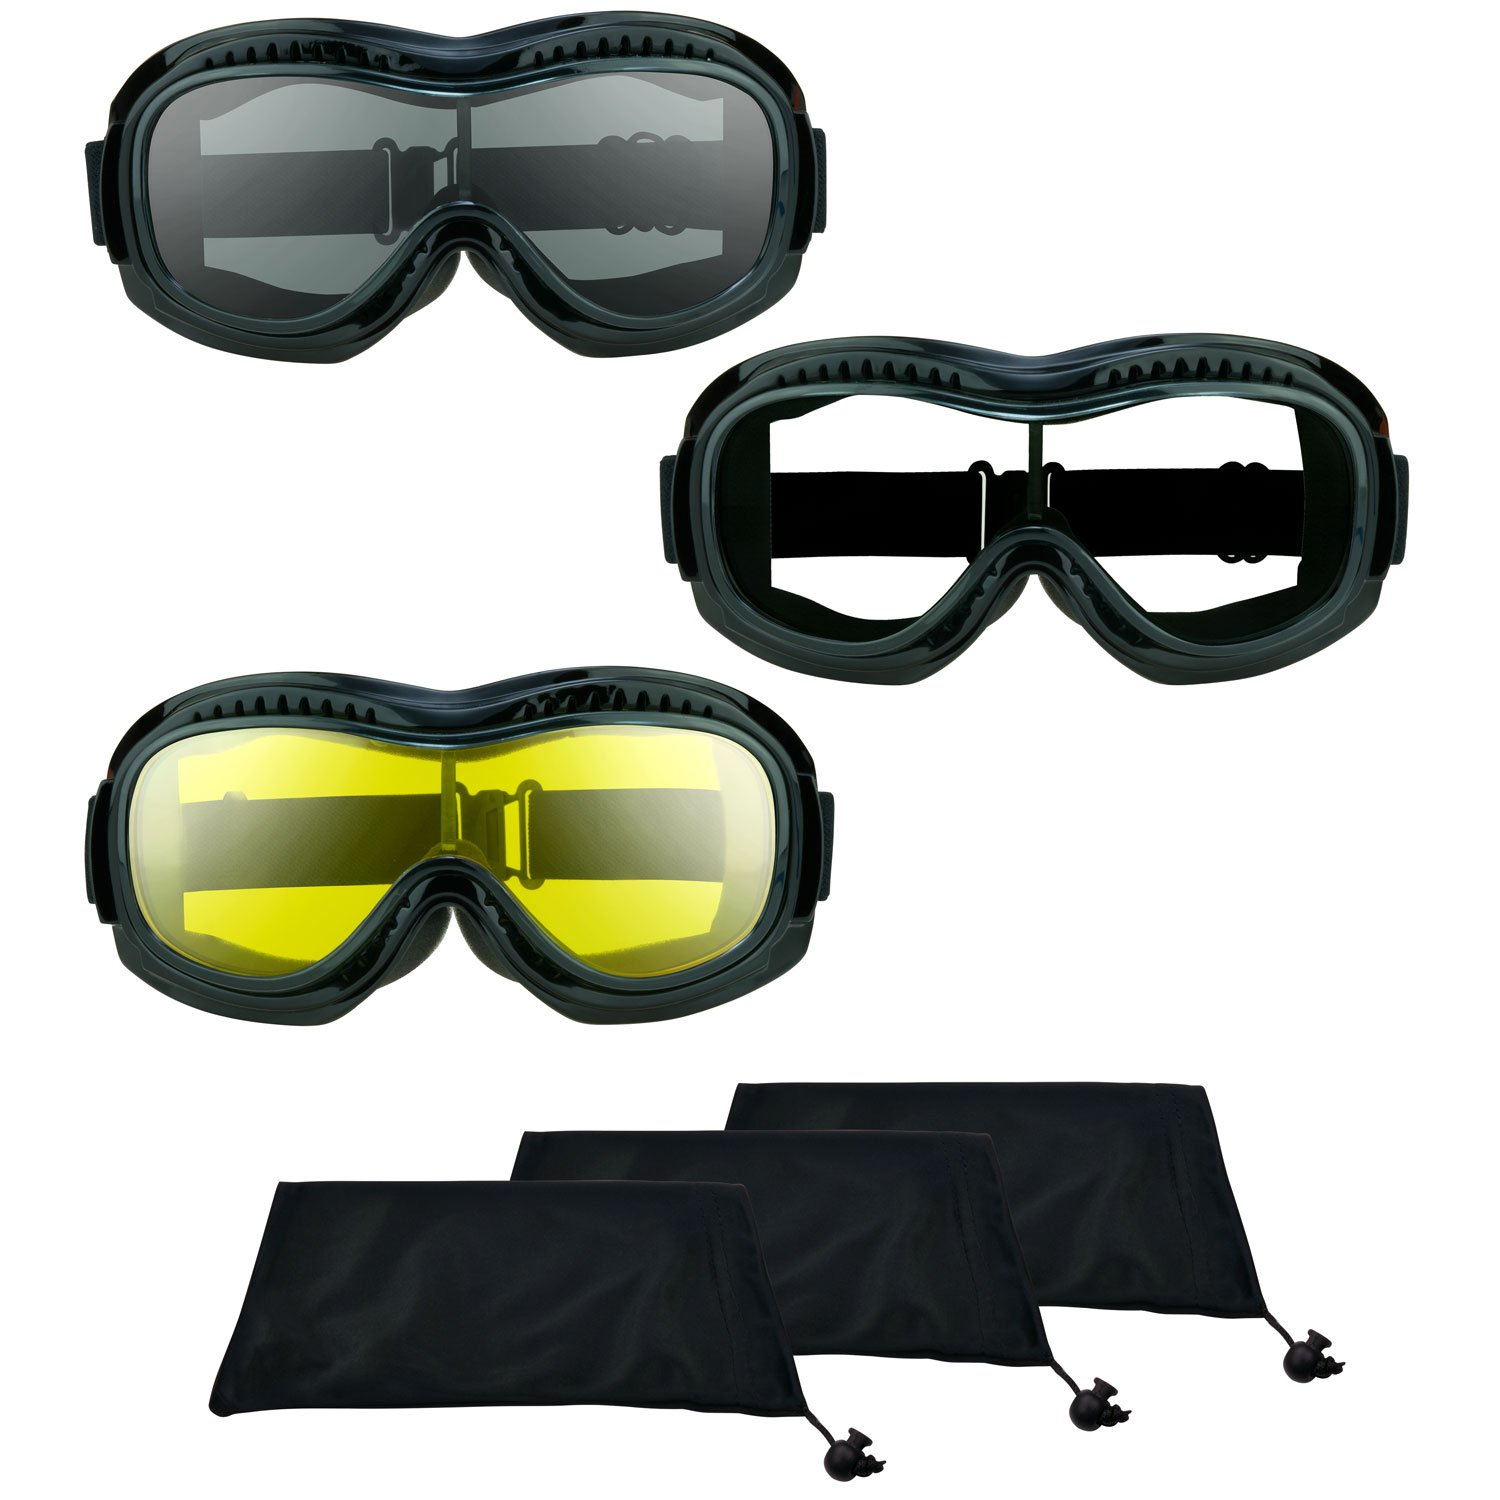 Motorcycle Riding Over glasses Goggles with Polycarbonate Smoke, Clear or Yellow Lens for Men and Women with XXLarge Microfiber Cleaning Case Bomber Fit Over Goggles (smoke + clear + yellow Combo)